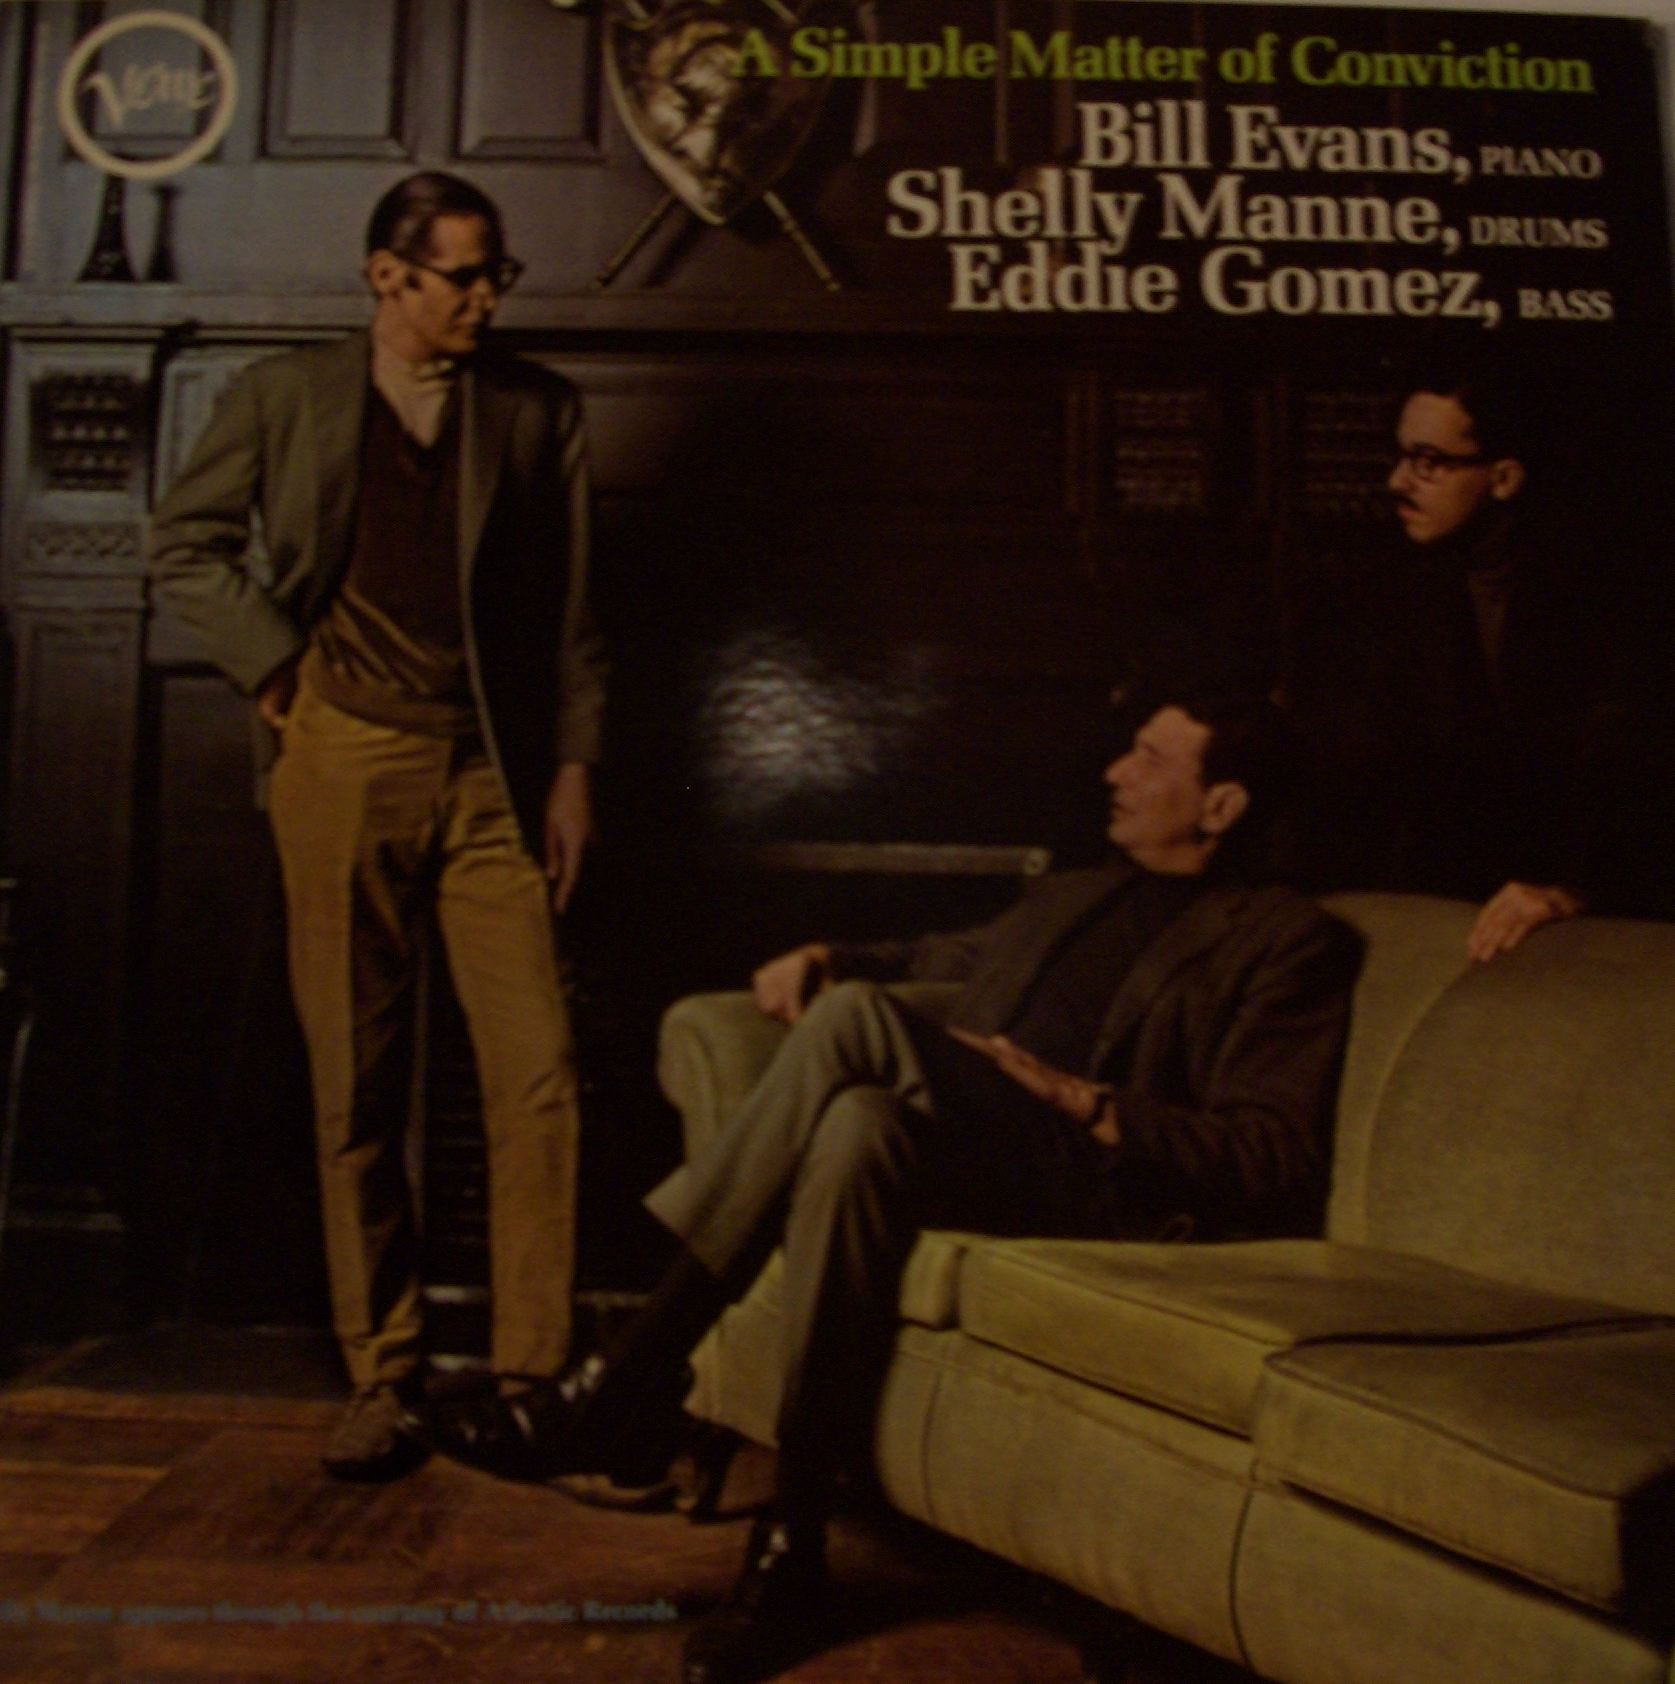 BILL EVANS / A SIMPLE MATTER OF CONVICTION